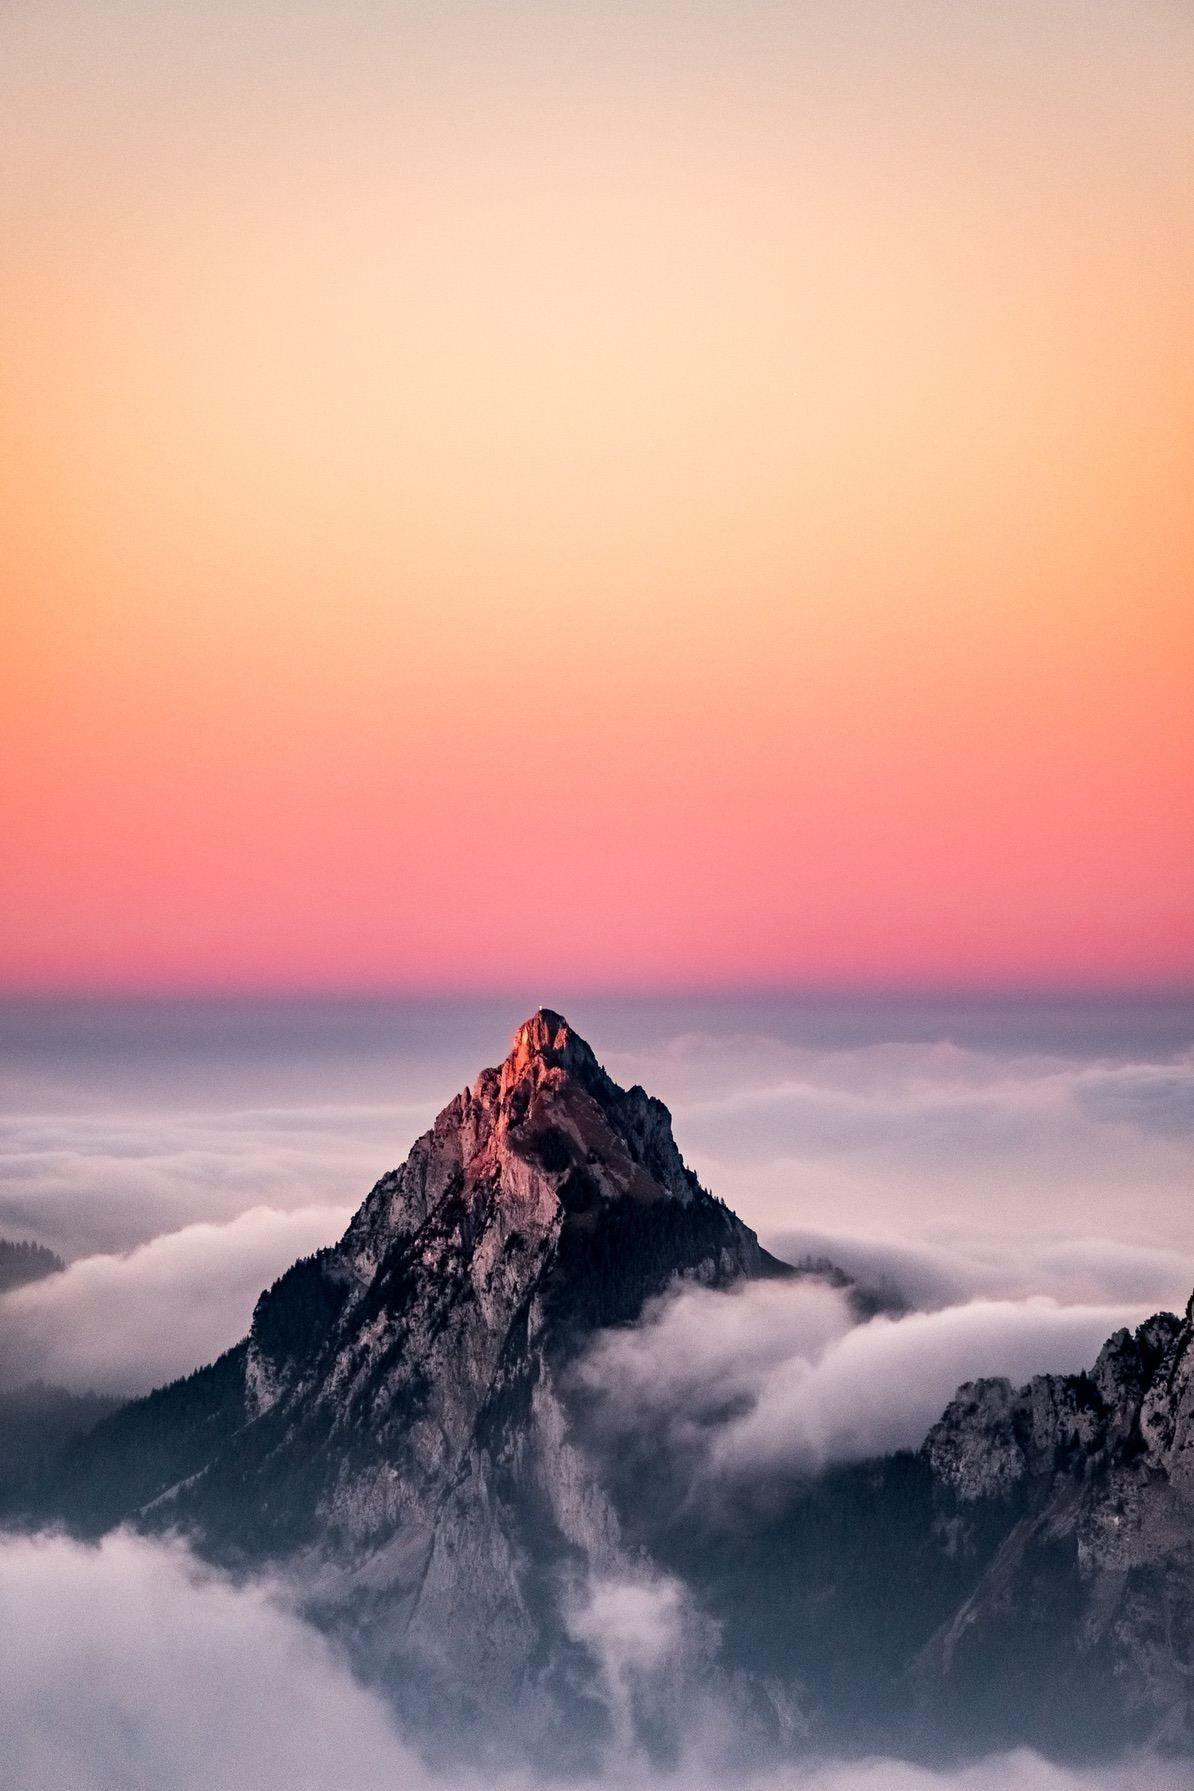 Hd Mountain Wallpaper Iphone Photography Beautiful Aesthetic Mountain Wallpaper Including Mountain Photography Snow Mountain Wall